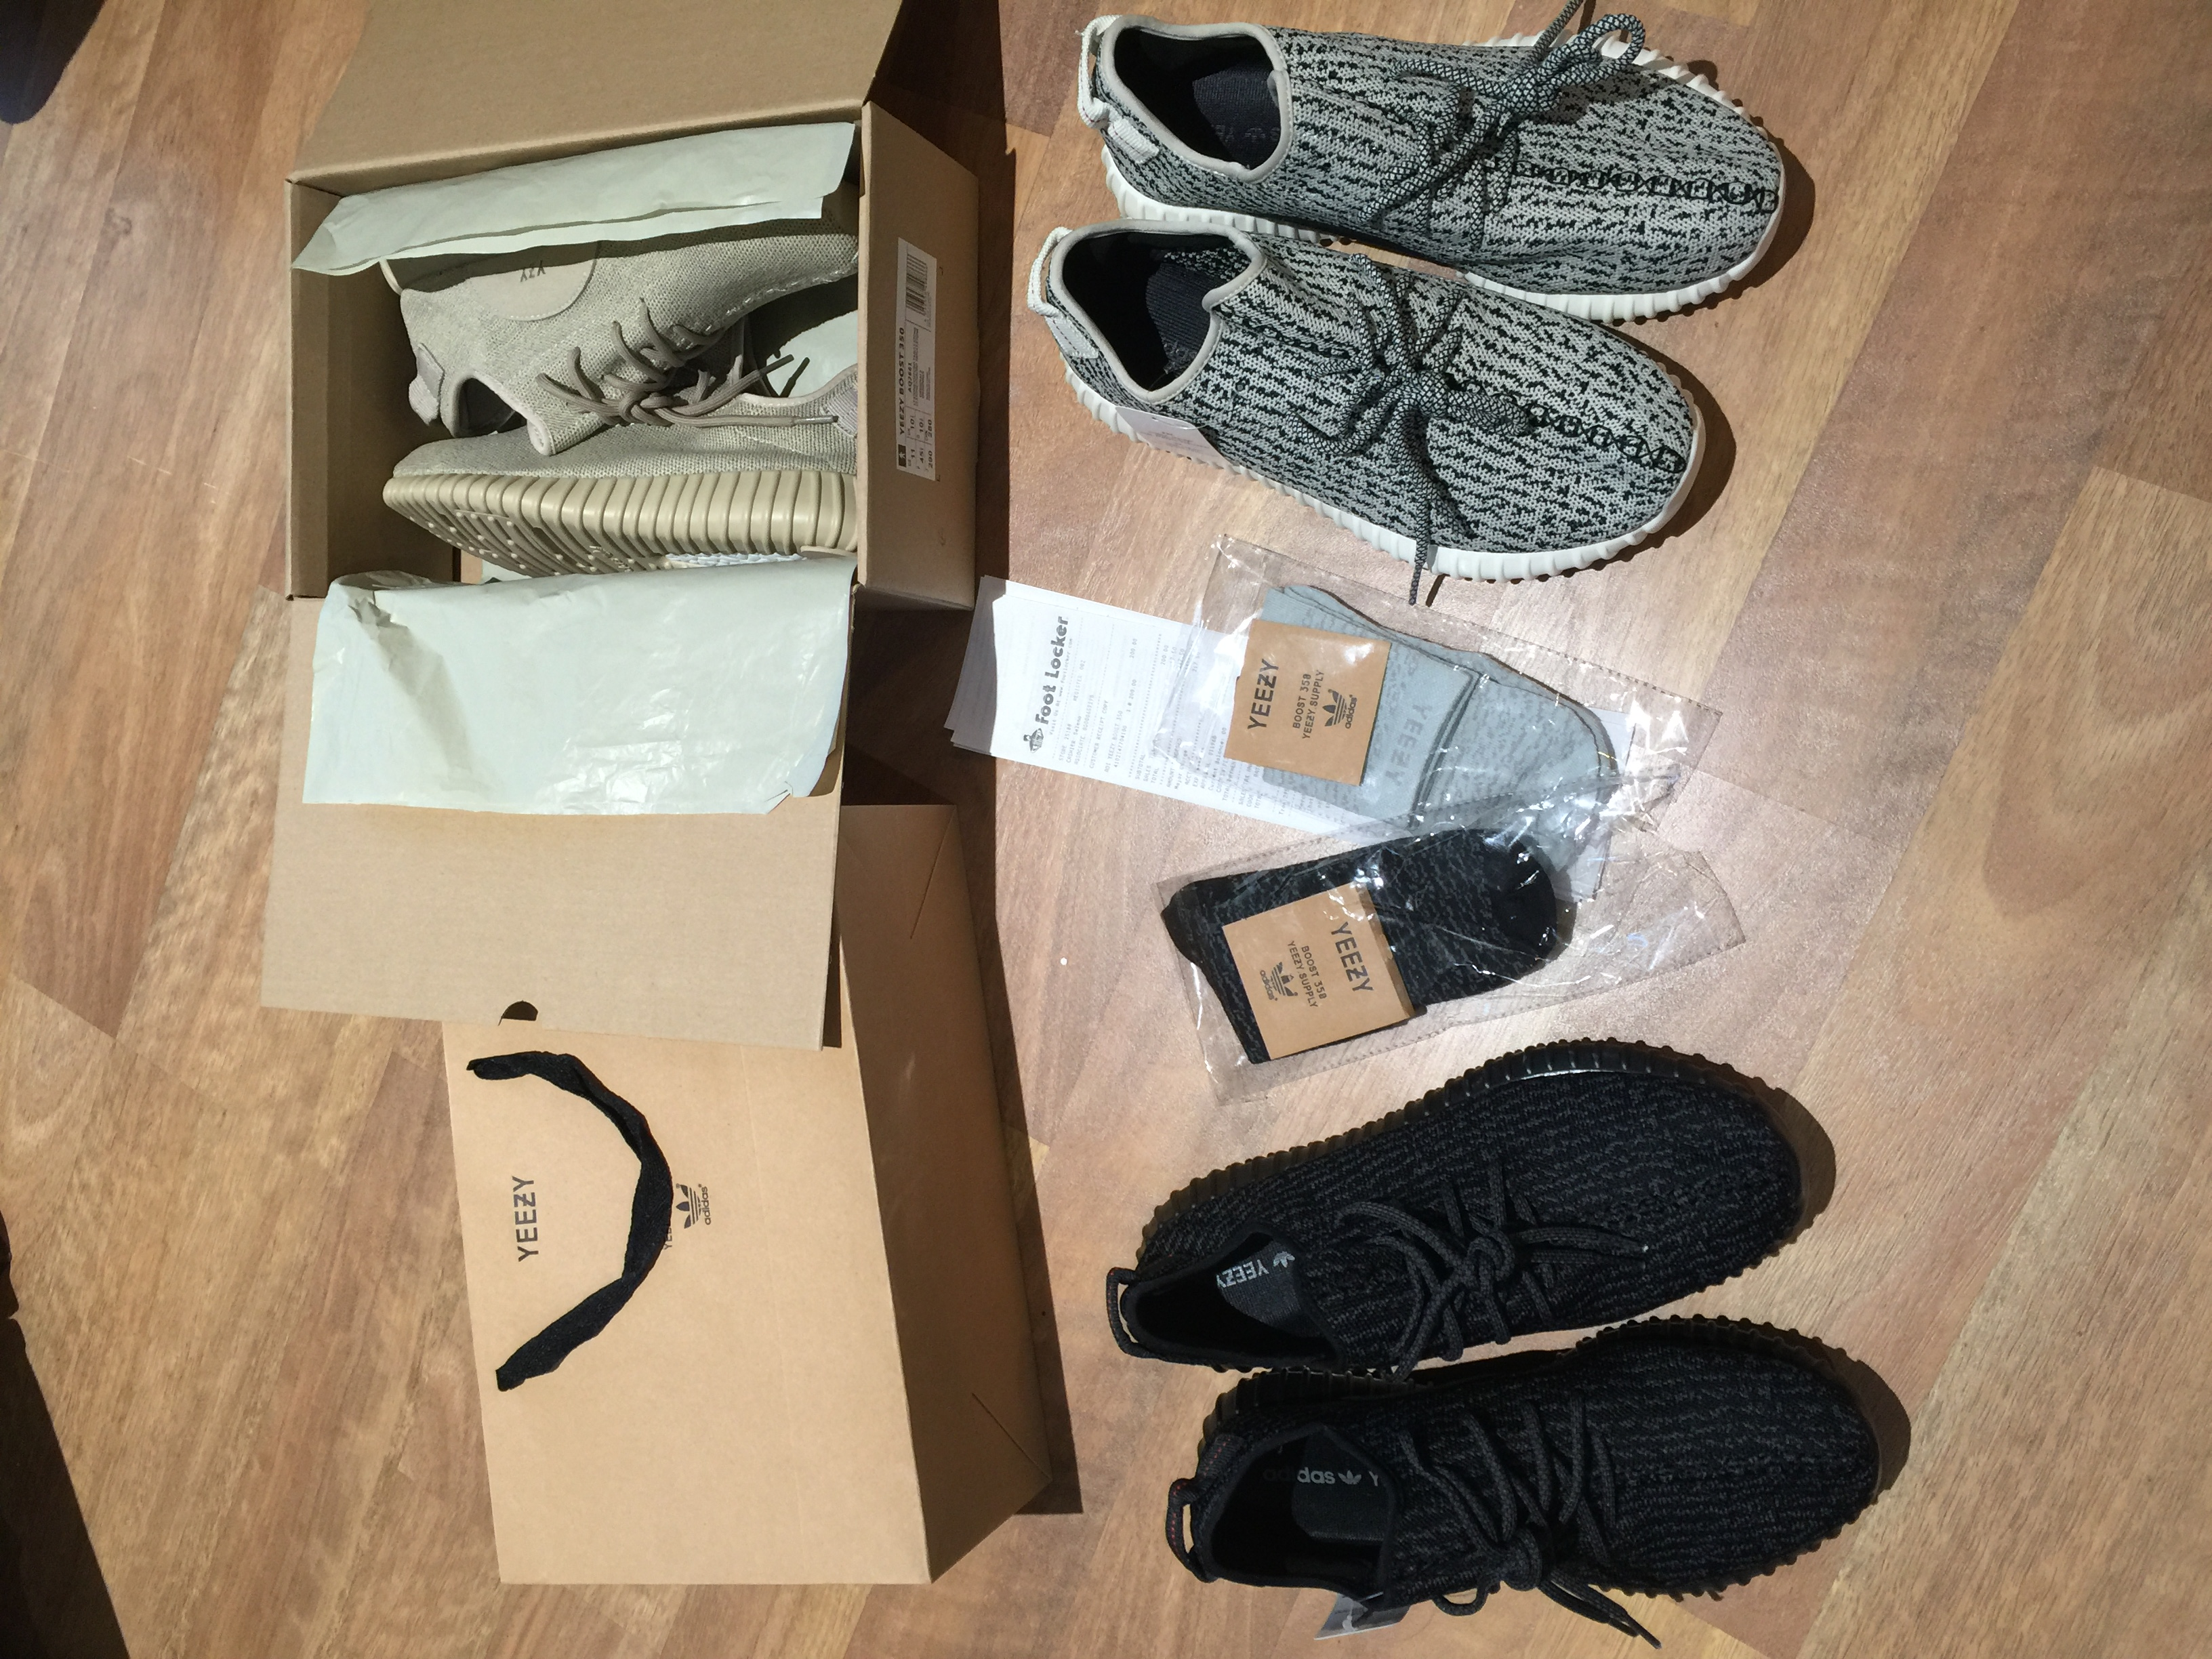 watch 07bc9 951d4 UA Yeezy 350 Boost Oxford Tan, Pirate Black, Turtledove, Moonrock w/  receipt, socks and box Size 11 sold by DEELs